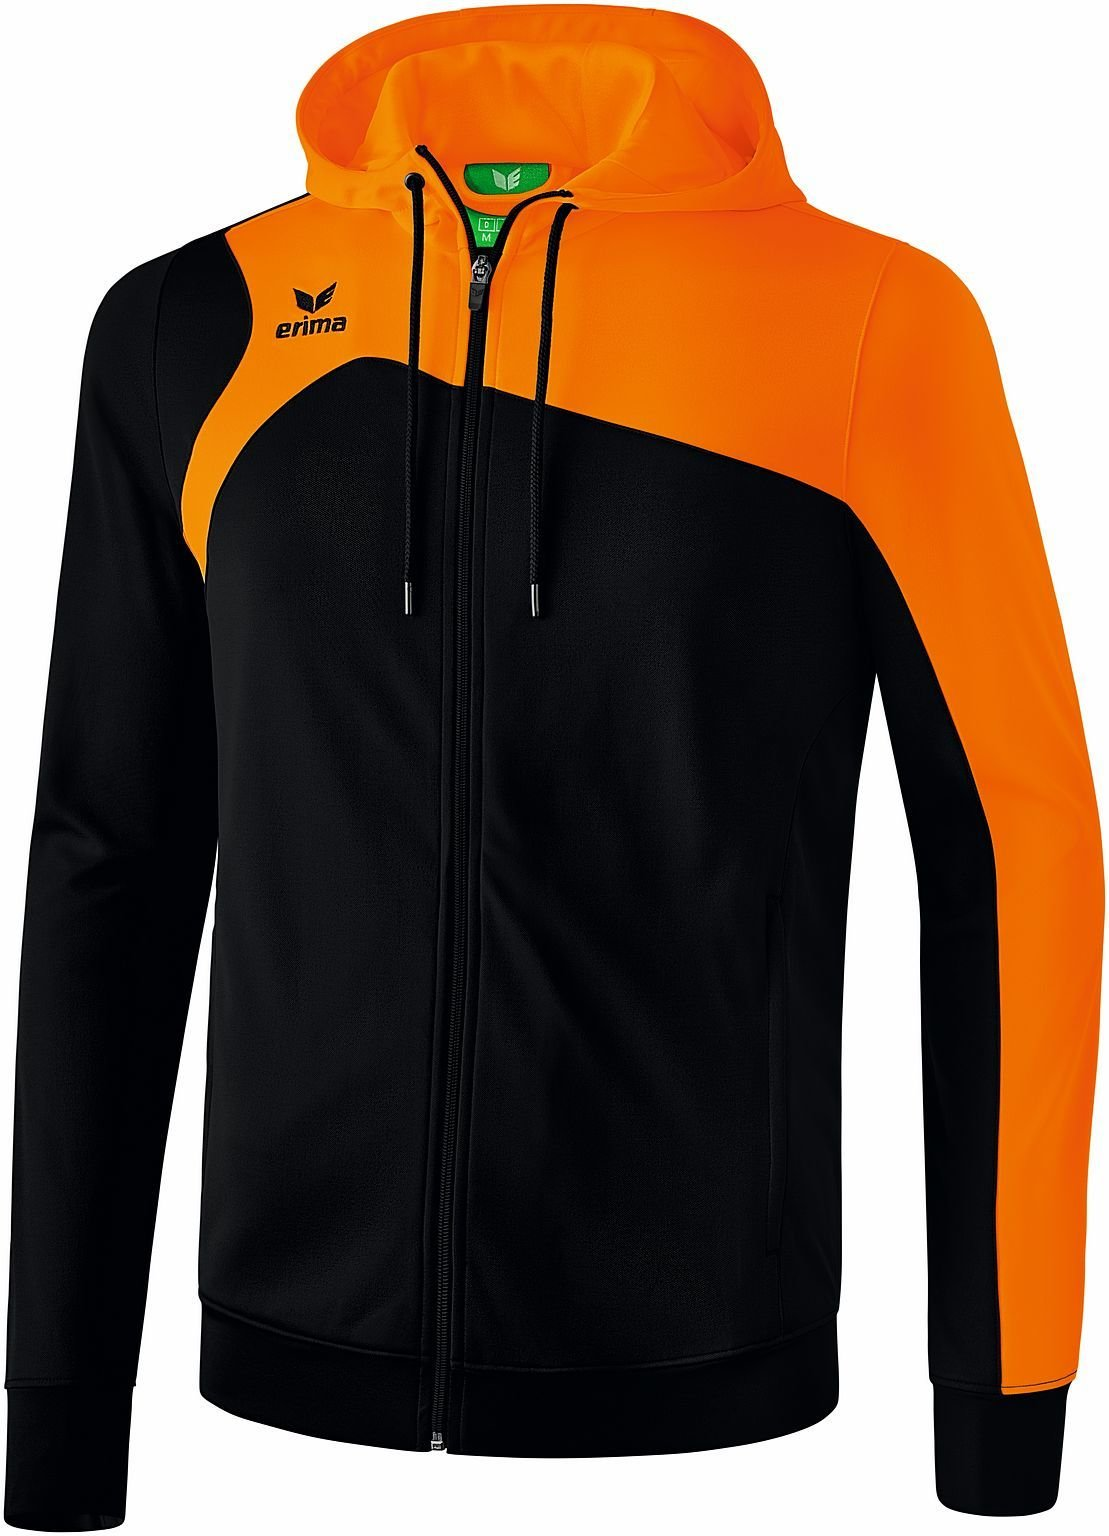 Club 1900 2.0 Trainingsjacke mit Kapuze in 10 Farben ak1070701